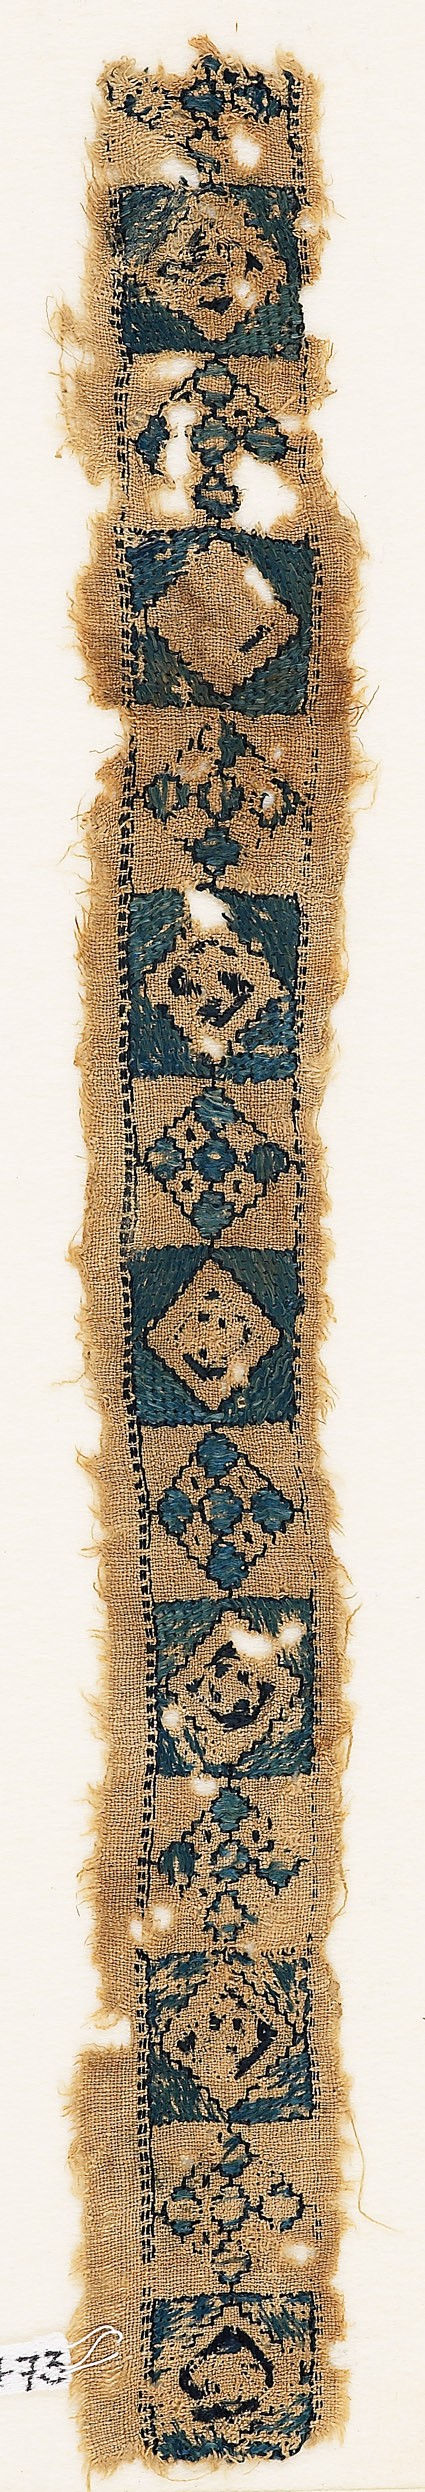 Textile fragment with alternating diamond-shapes and quatrefoils